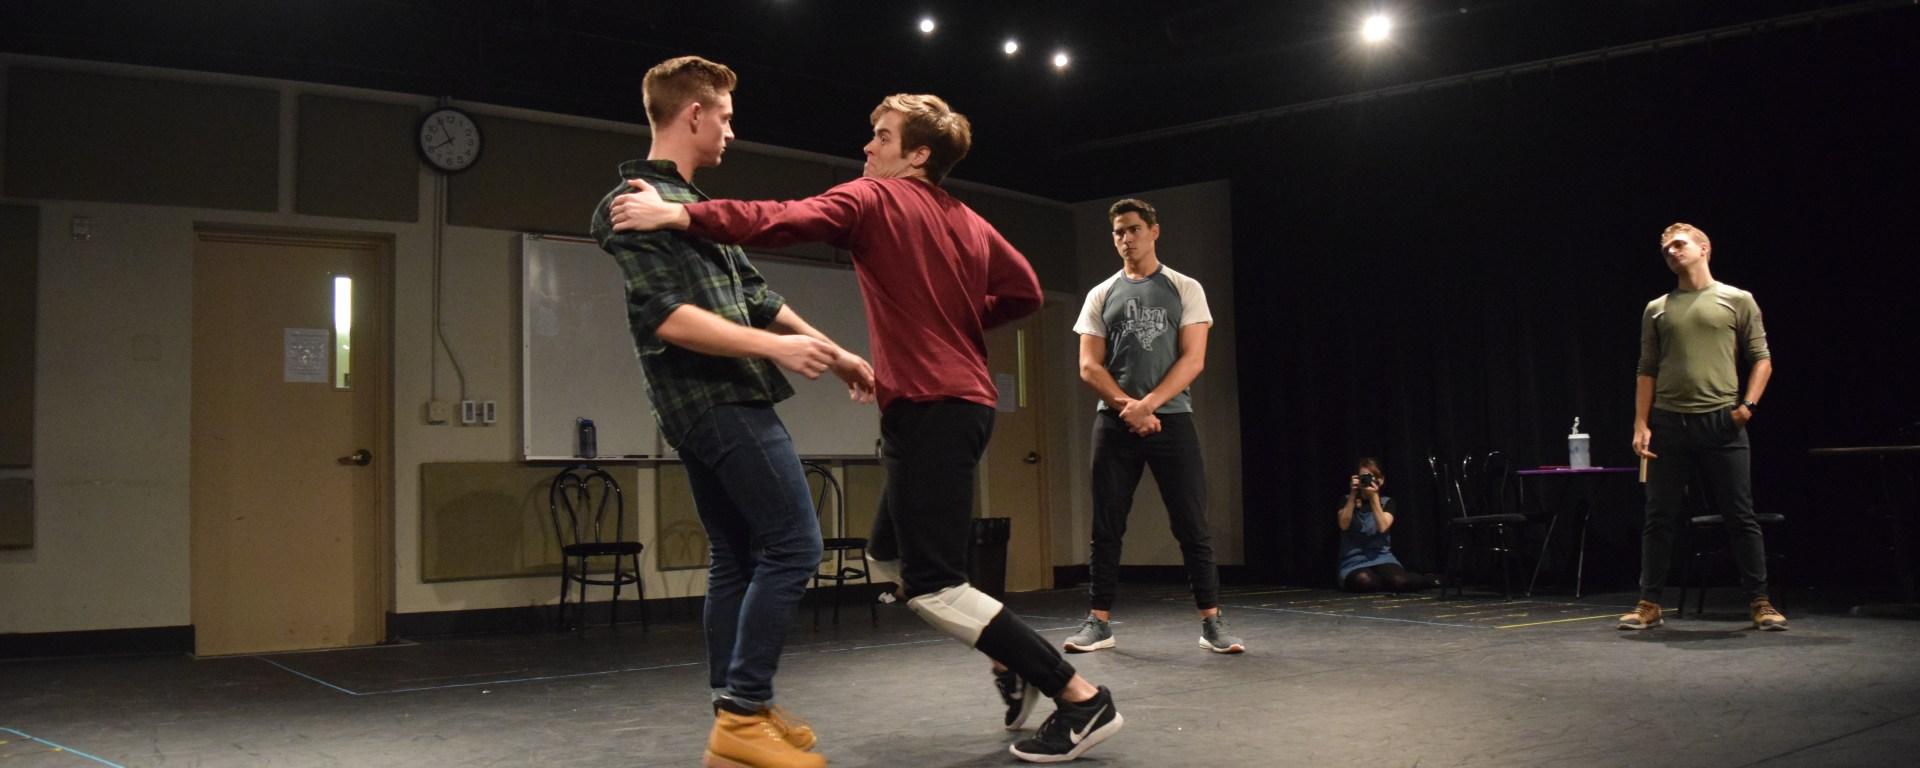 In the rehearsal room, the cast of Cabaret rehearses fight choreography.